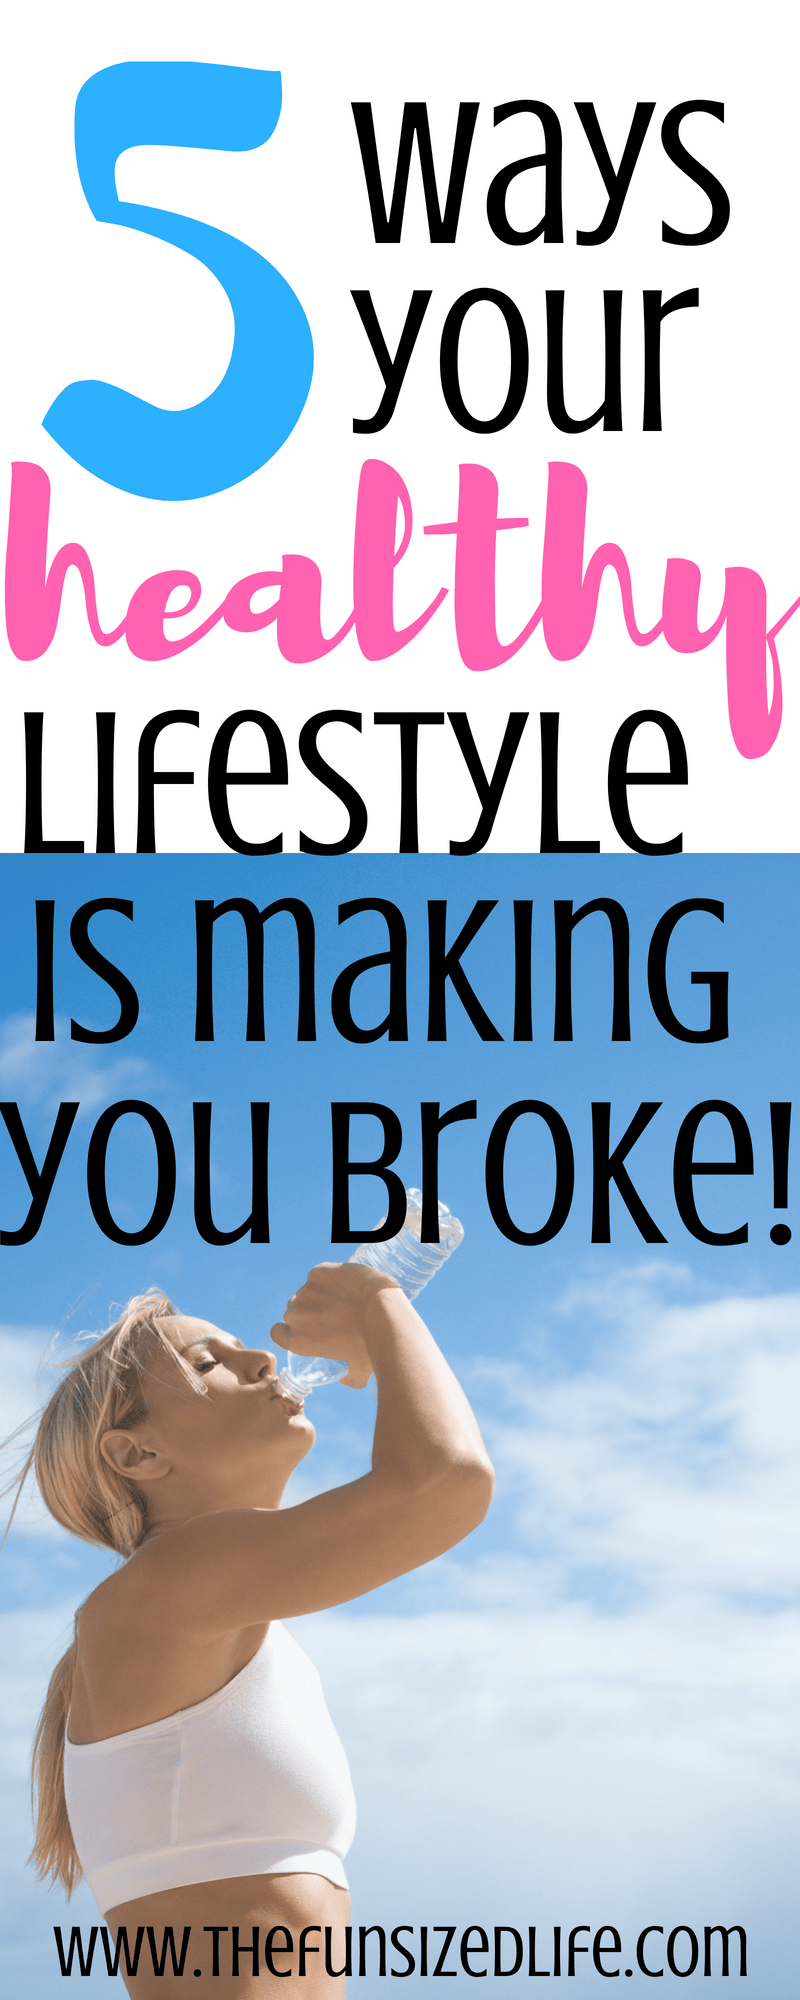 Being healthy can be super expensive! How to make your healthy lifestyle more affordable! #savemoney #health #gymmembership #eathealthy #dietplan